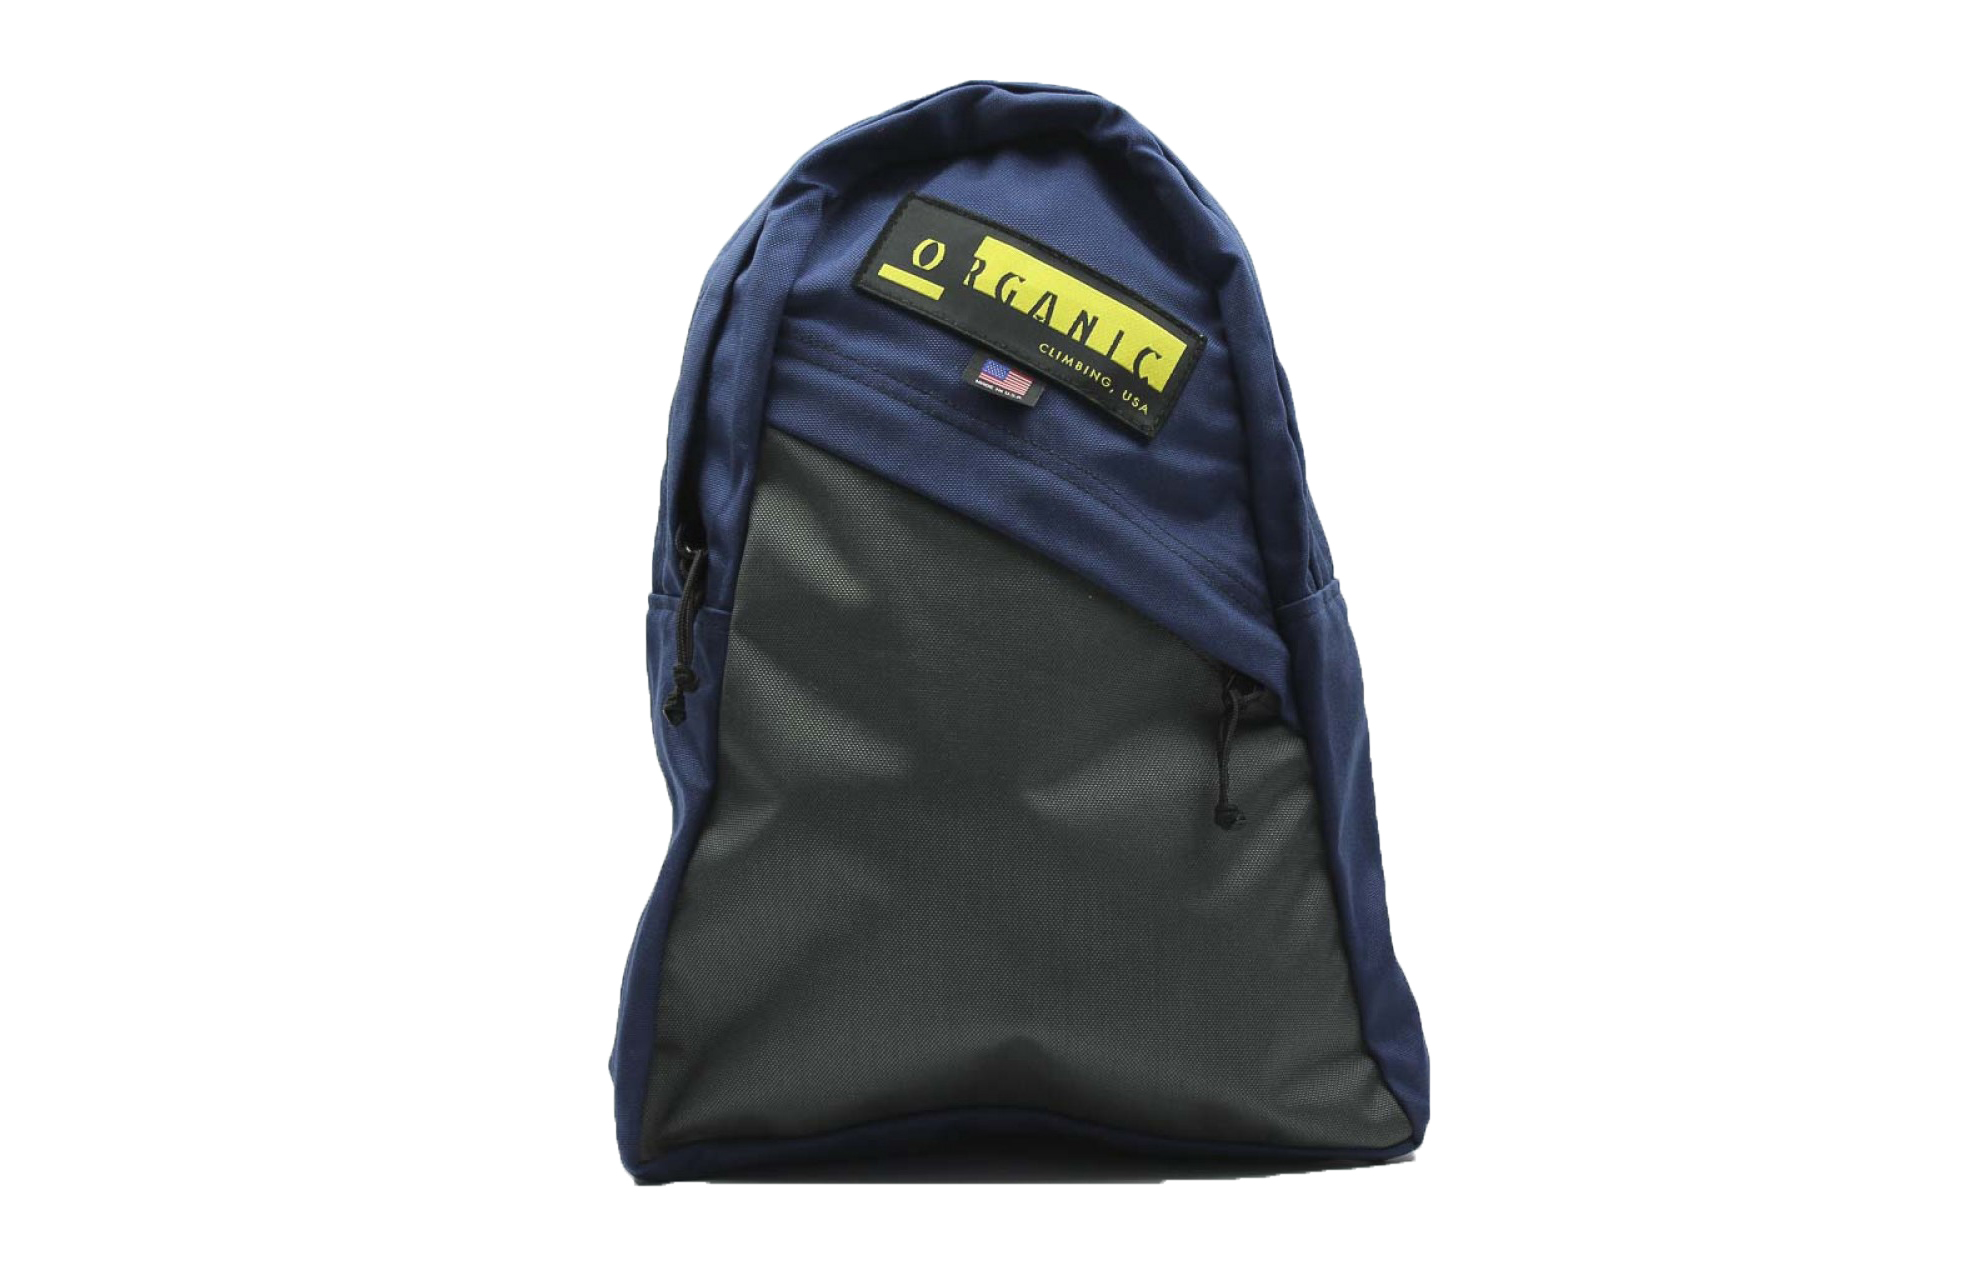 ORGANIC RETRO BOOK BAG - $48